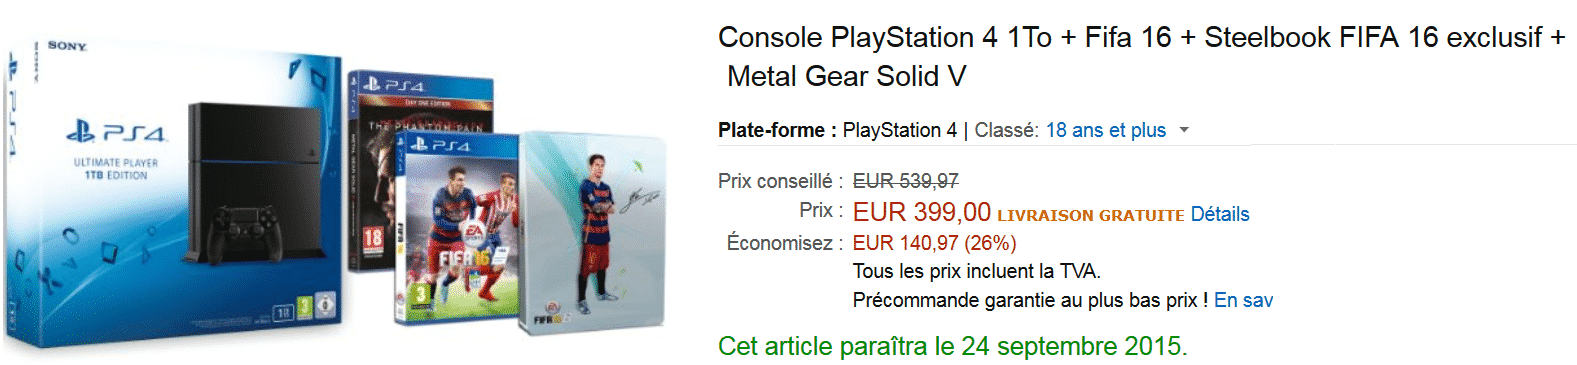 pack-ps4-metal-gear-fifa-amazon